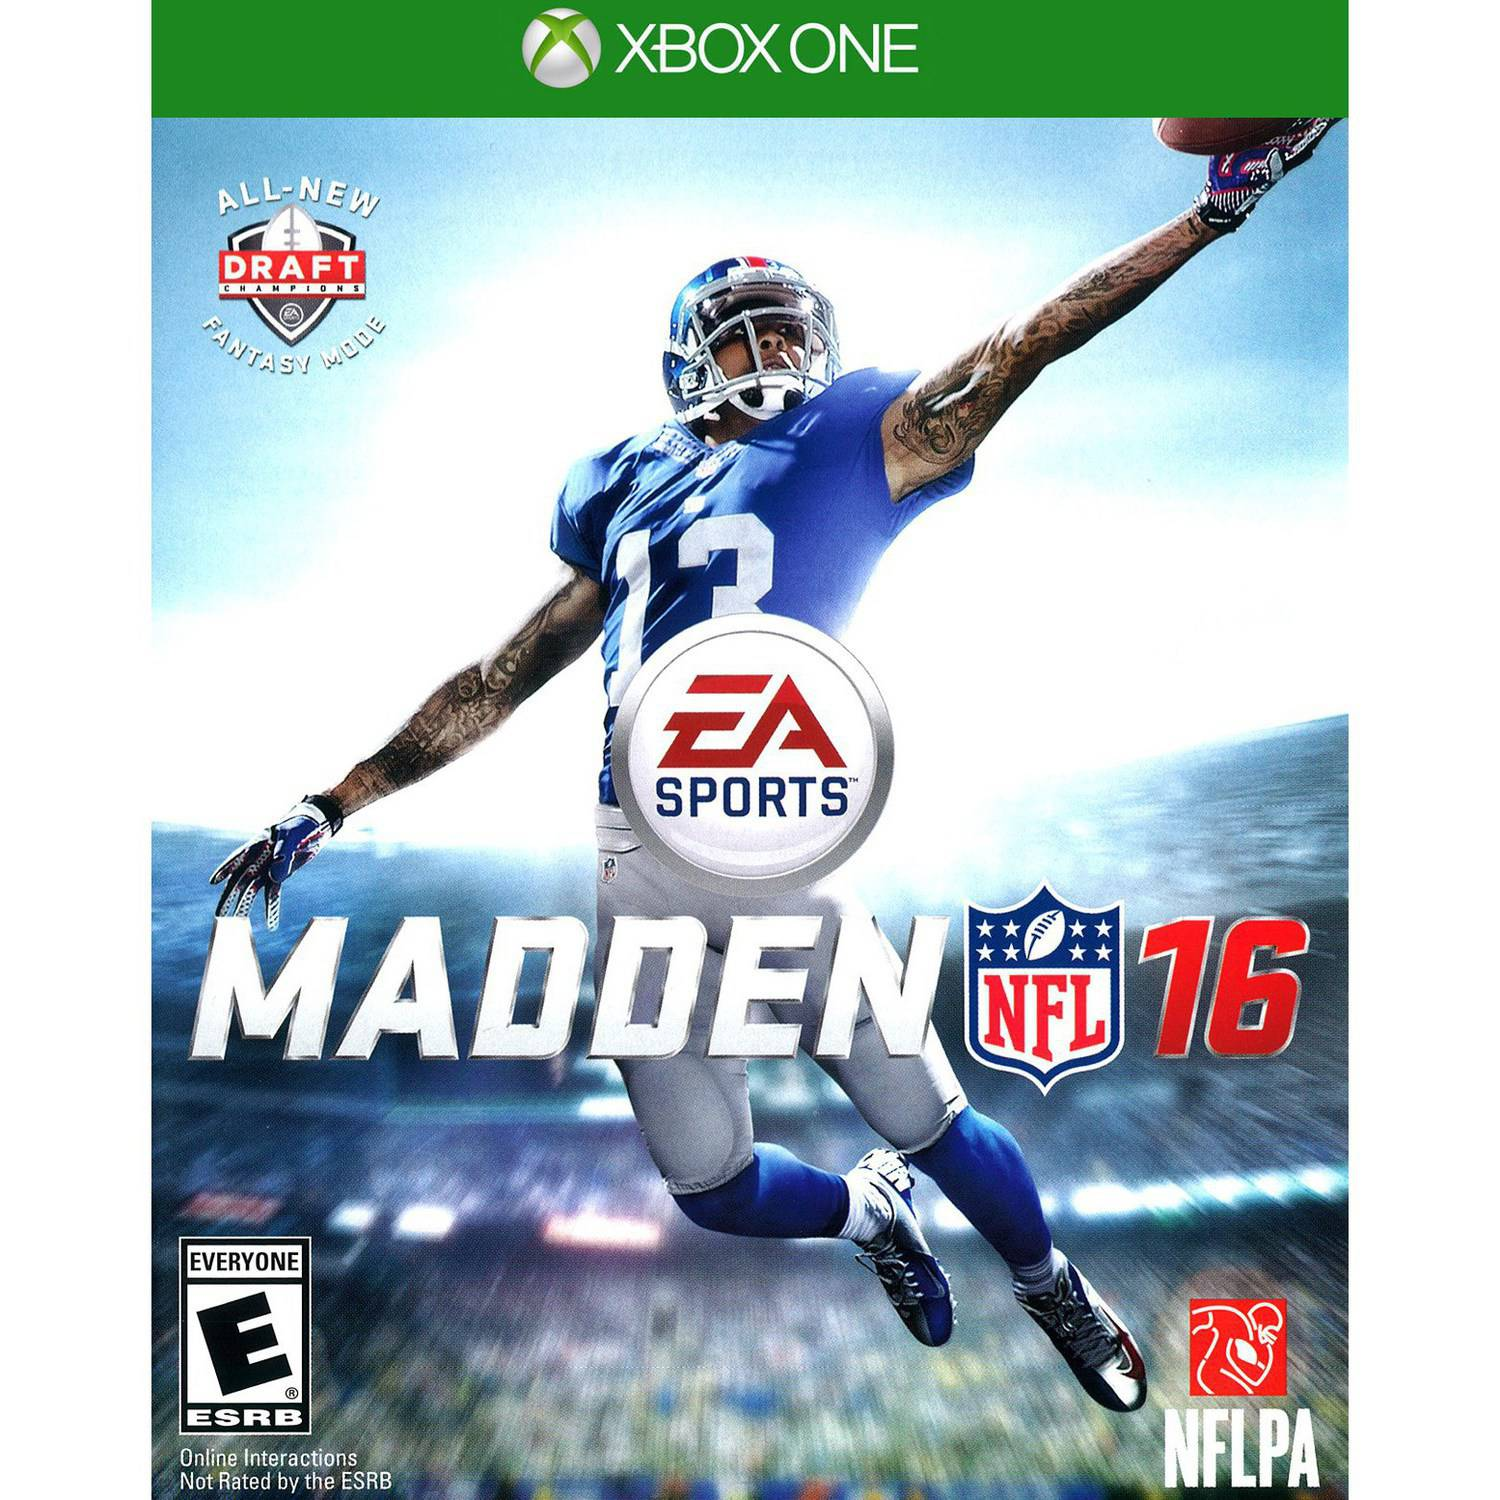 Madden NFL 16 (Xbox One) - Pre-Owned